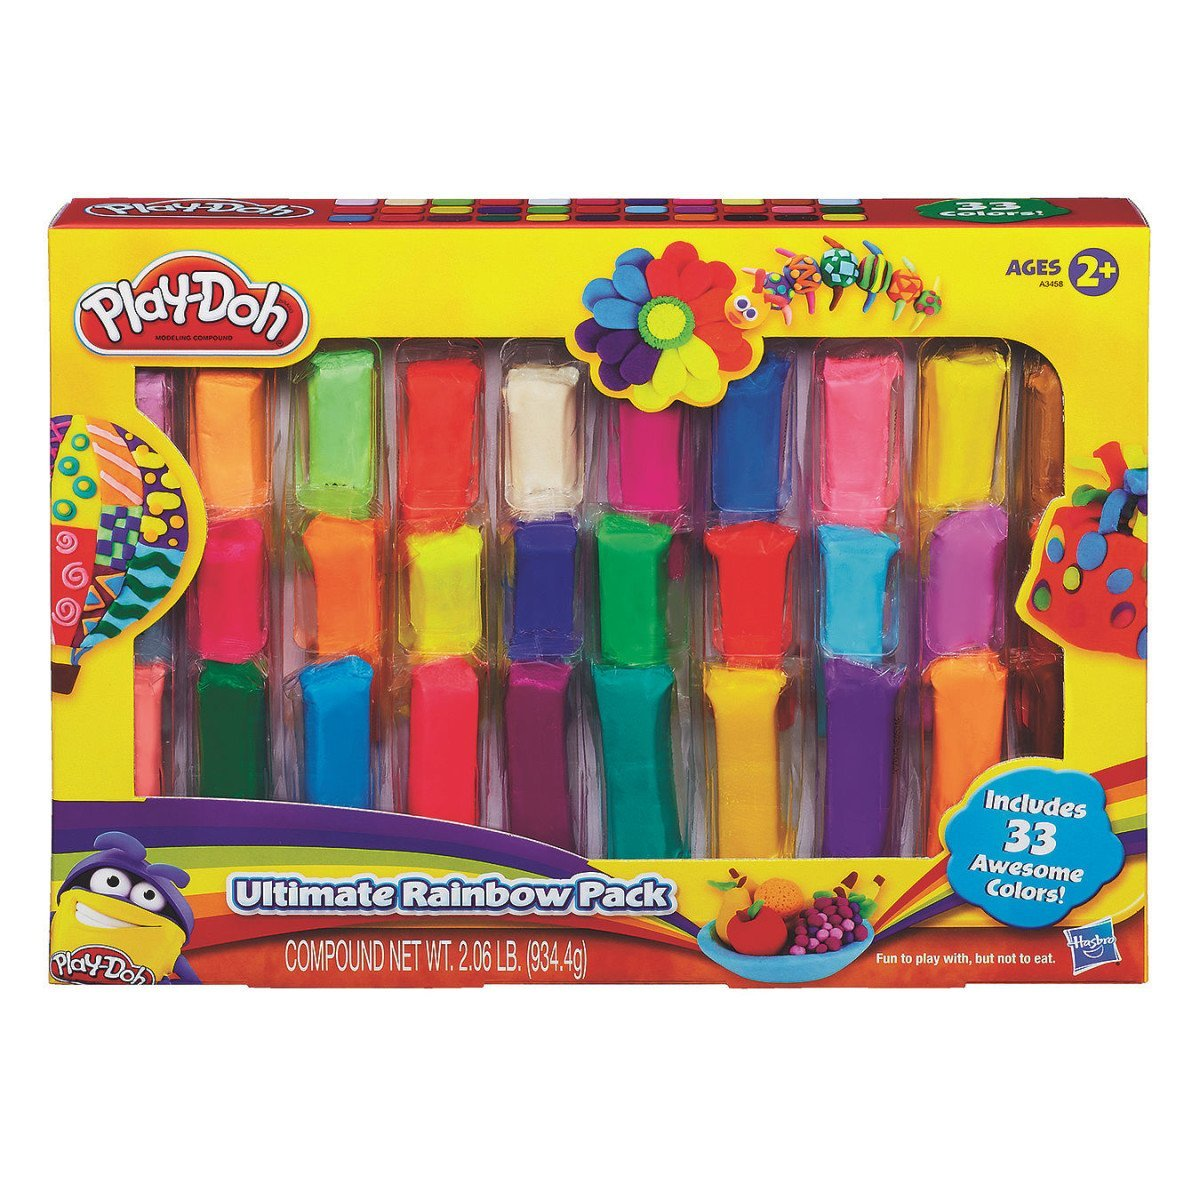 Play-Doh Ultimate Rainbow PackTested for quality and durability By Hasbro